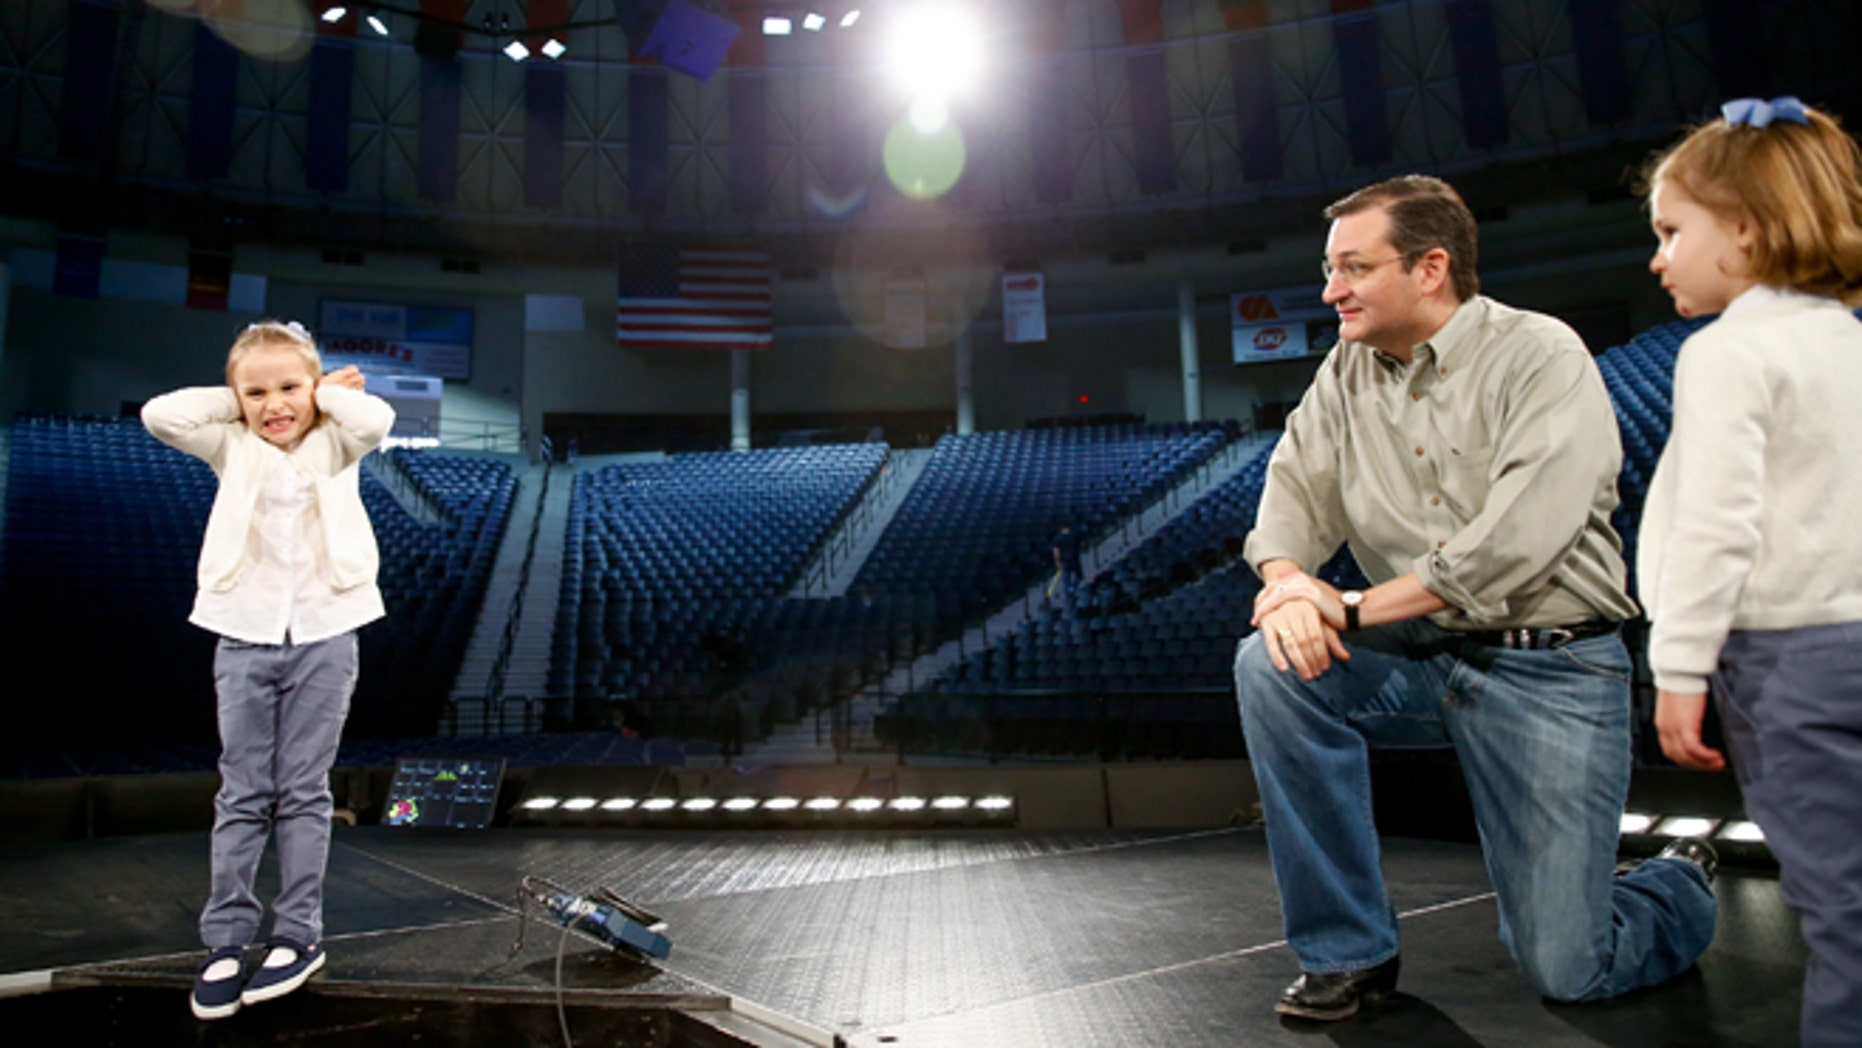 Caroline Cruz, 6, pretends to react to noise as Sen. Ted Cruz, R-Texas, tells her and her sister, Catherine, 4, right, how loud and crowded it will be for Cruz's Monday morning speech where he is expected to launch his campaign for U.S. president, during a walk-through on stage at Liberty University on Sunday, March 22, 2015 in Lynchburg, Va. Cruz will be the first major candidate in the 2016 race for president. (AP Photo/Andrew Harnik)